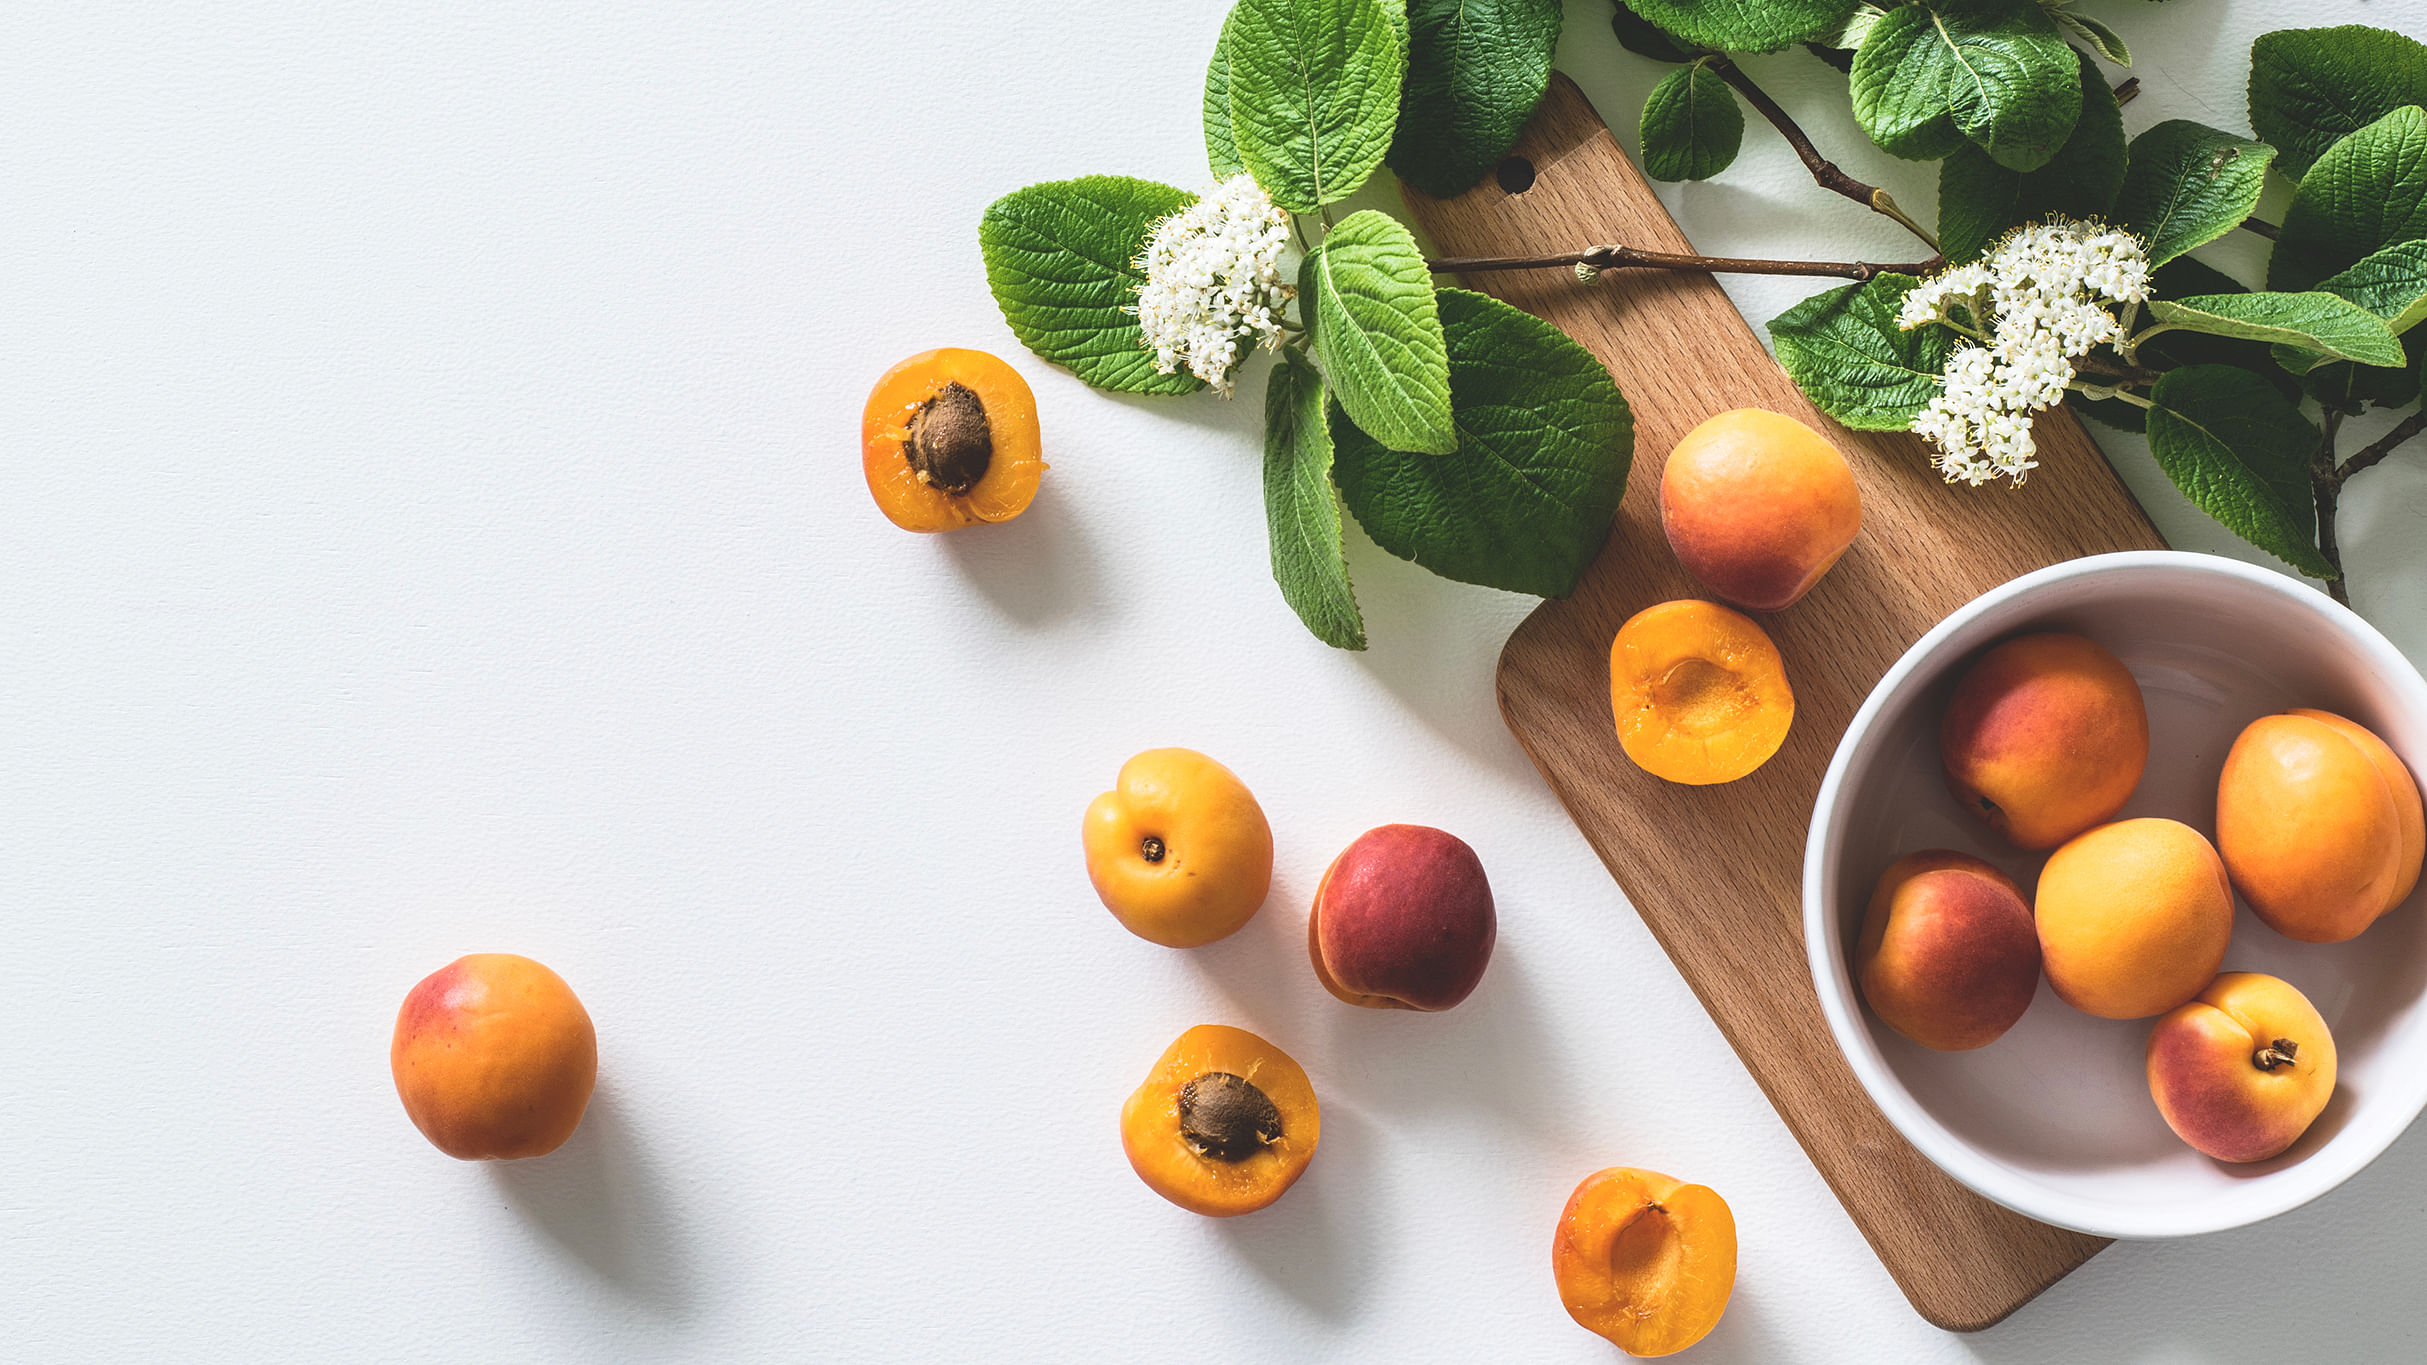 heaty foods to avoid, apricot